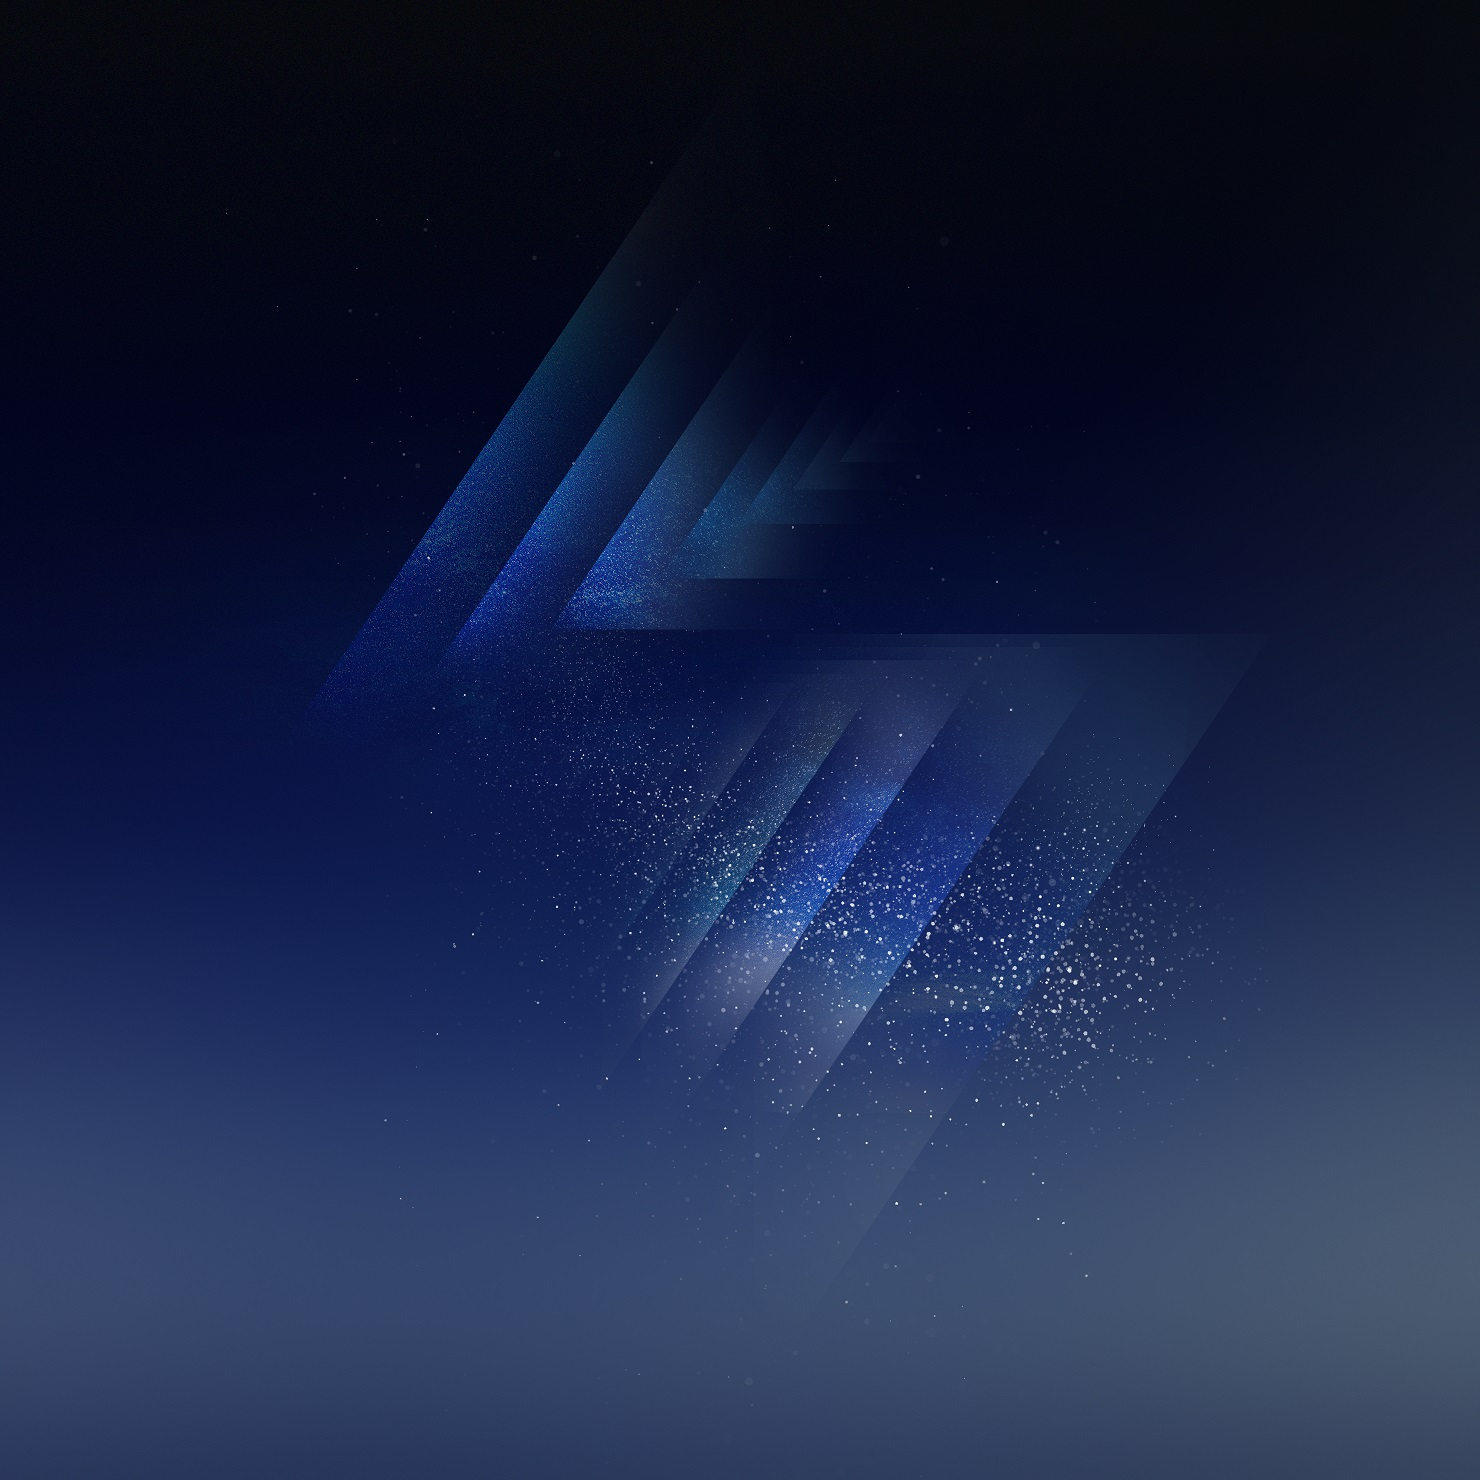 Galaxy S8 wallpaper (1)